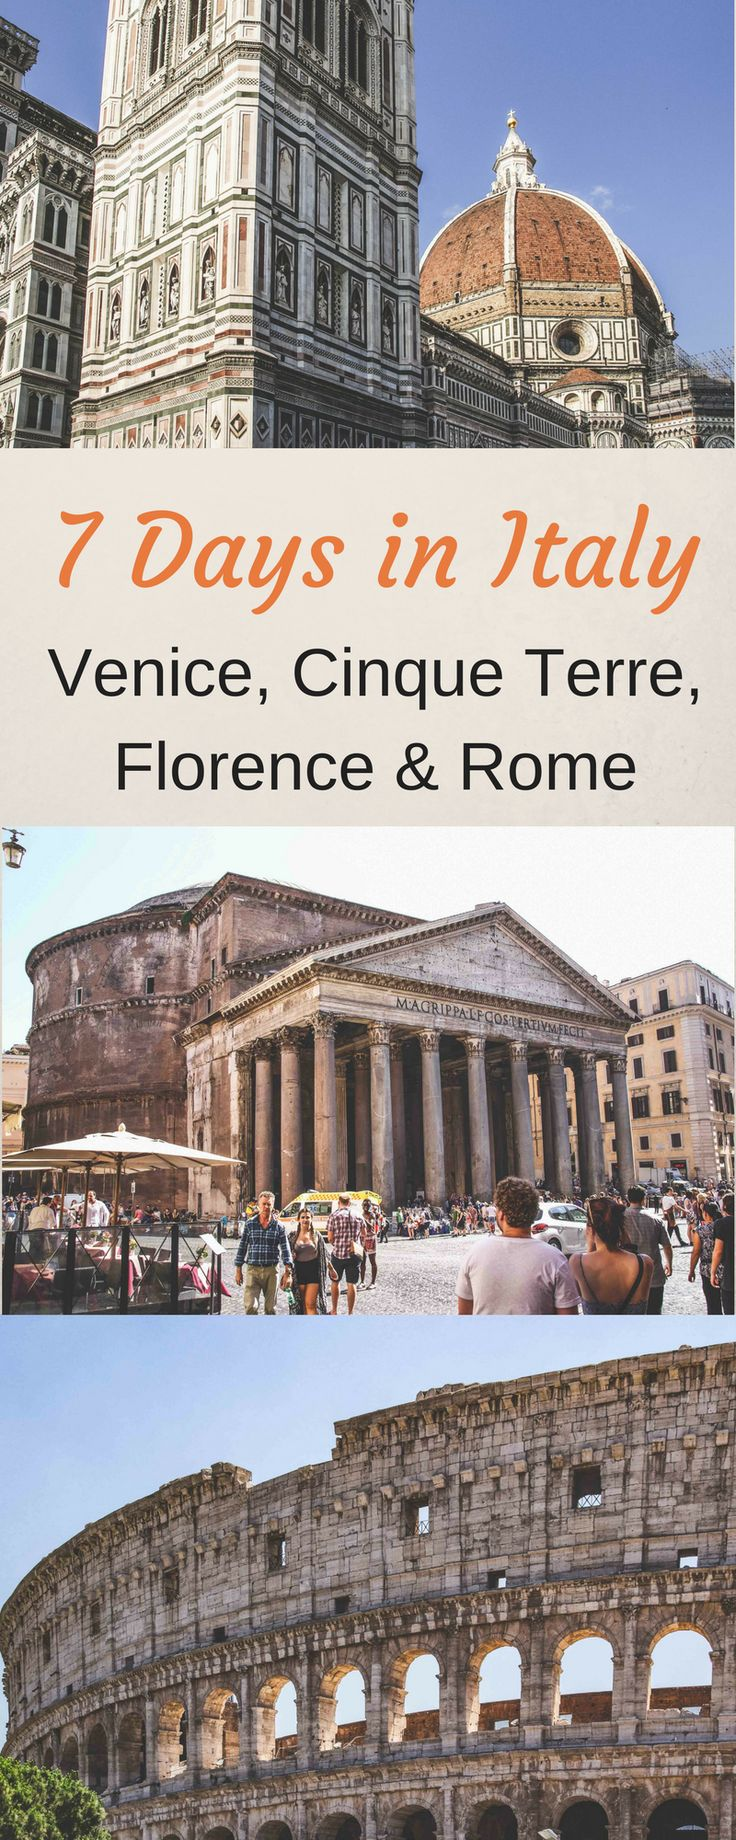 7 days in Italy Itinerary - 1 Week in Italy Itinerary - Venice, Cinque Terre, Florence, Rome - Highlights of Italy - Best of Italy - Italy Travel - Italy Vacation #Italy #Italiytrip #Venice #Florence #Rome